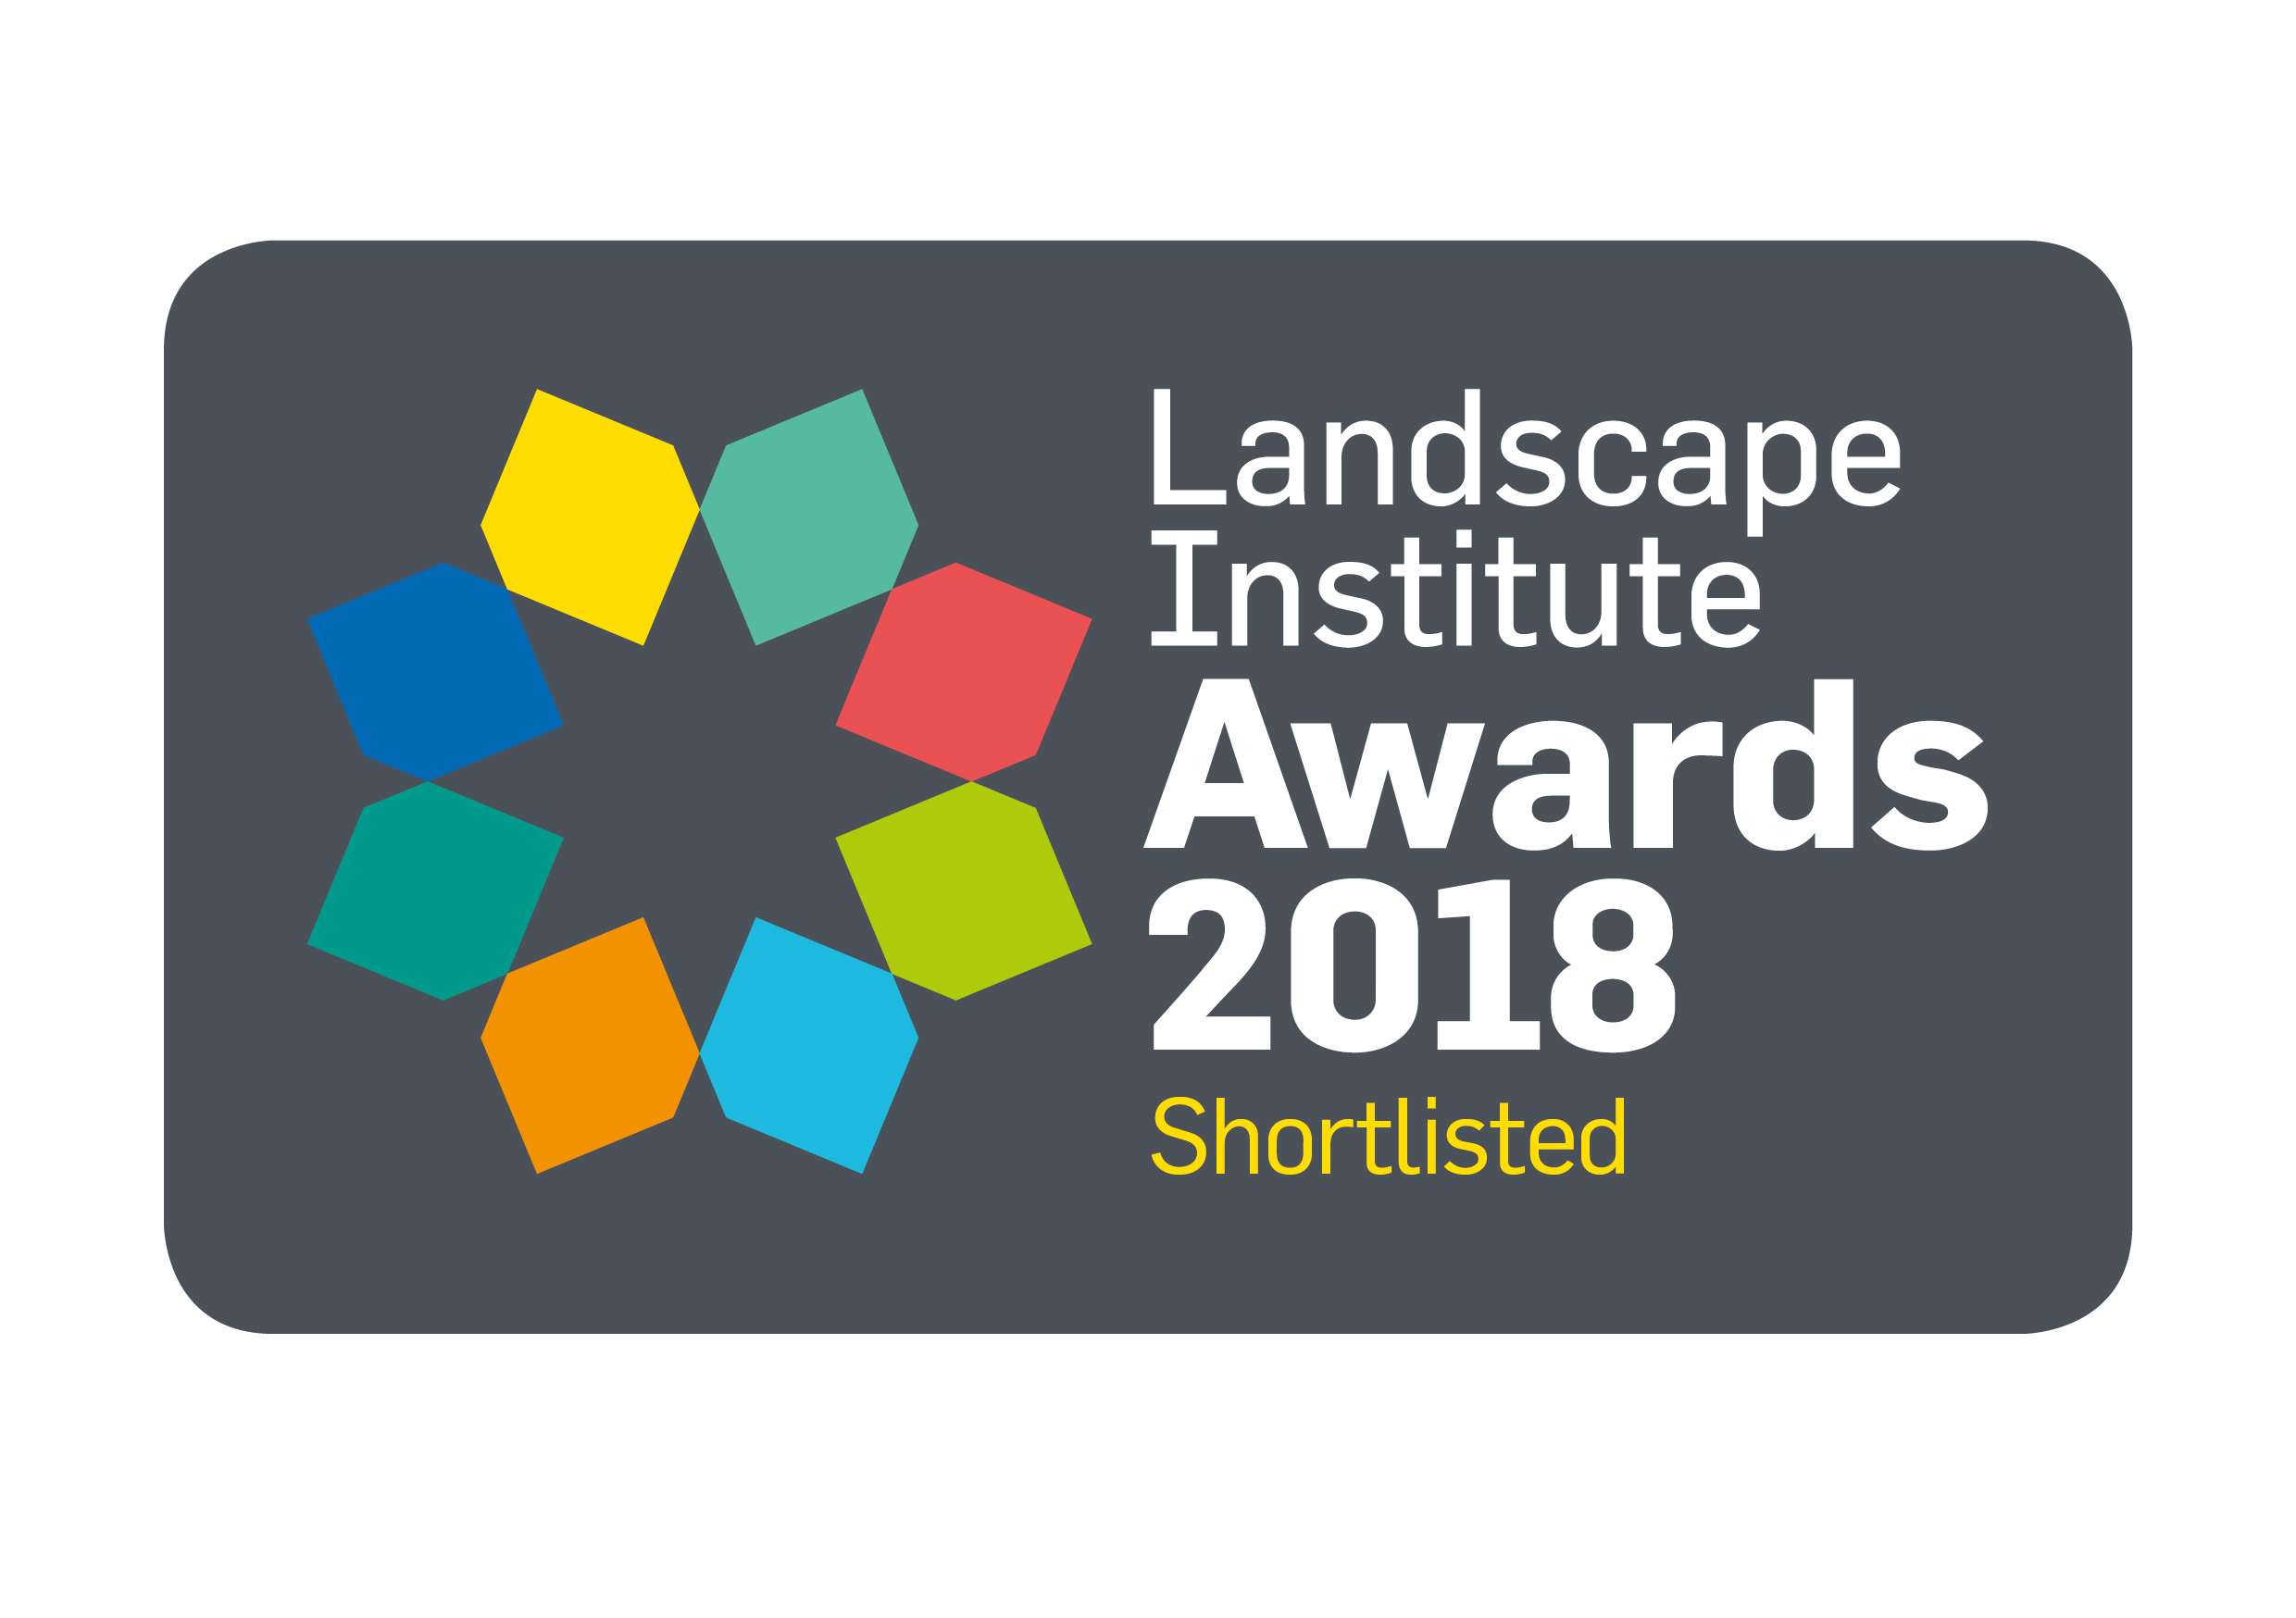 LI_Awards2018_Logo_Shortlisted.jpg